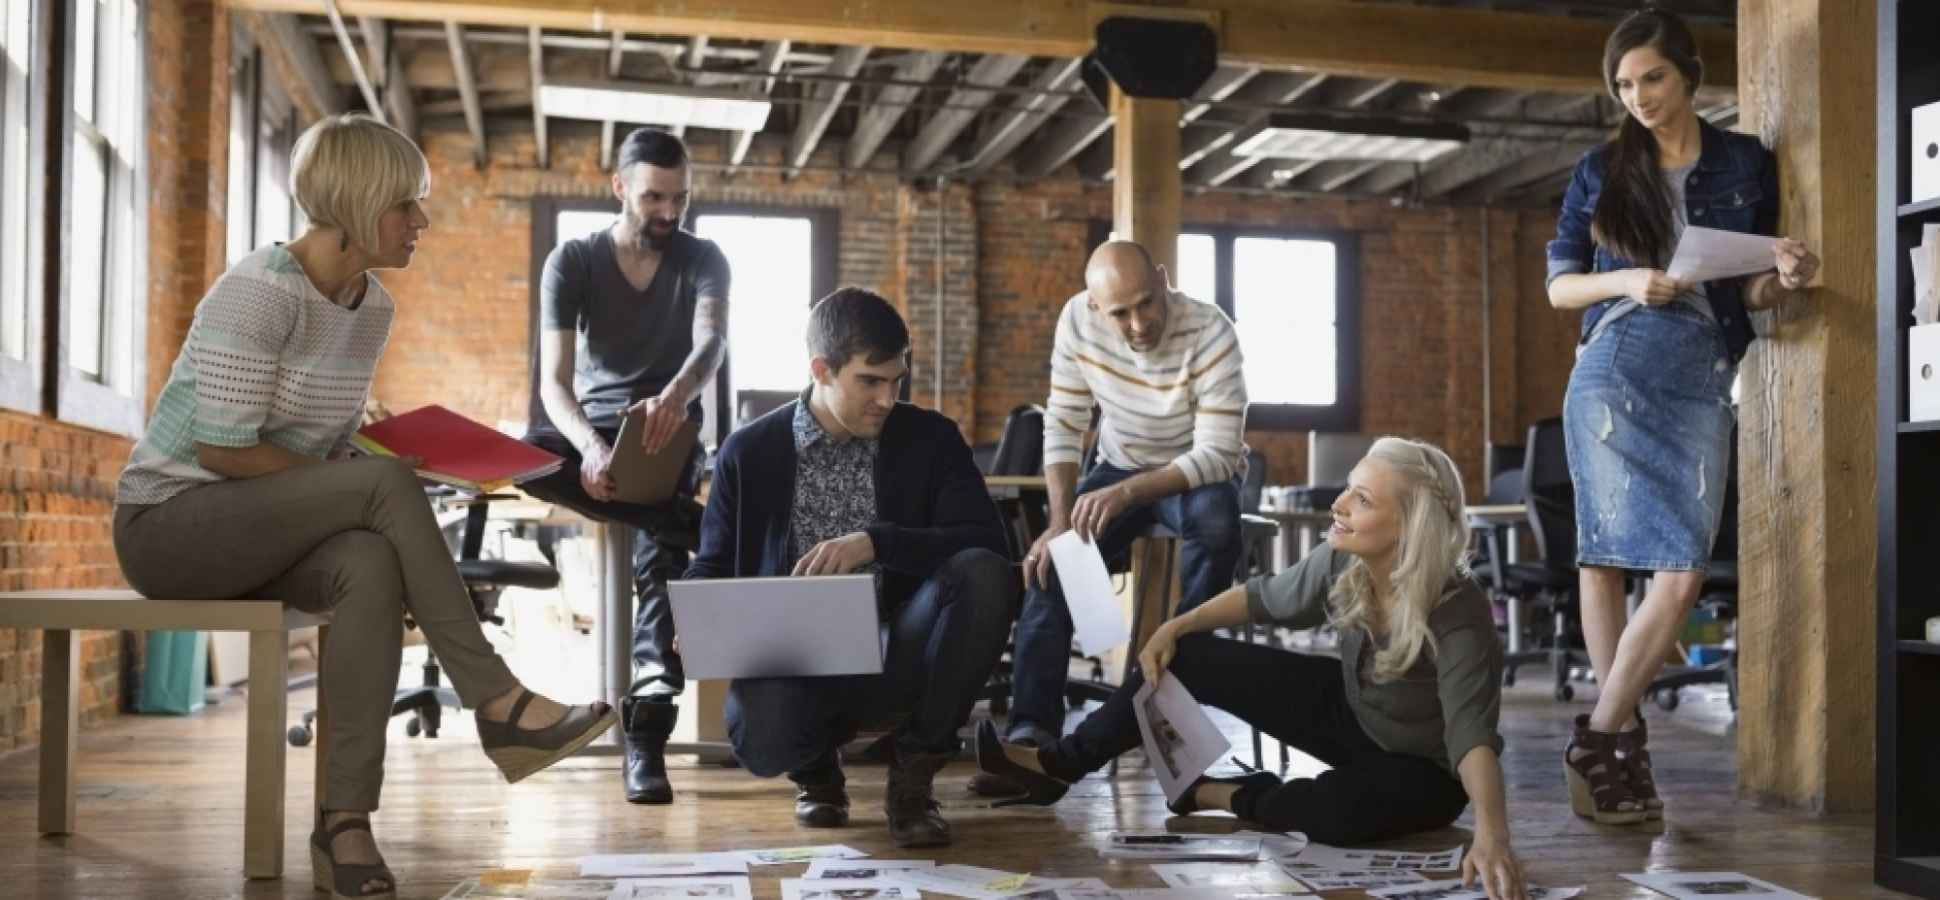 5 Startups that Have Come Up With Incredibly Unique Ideas